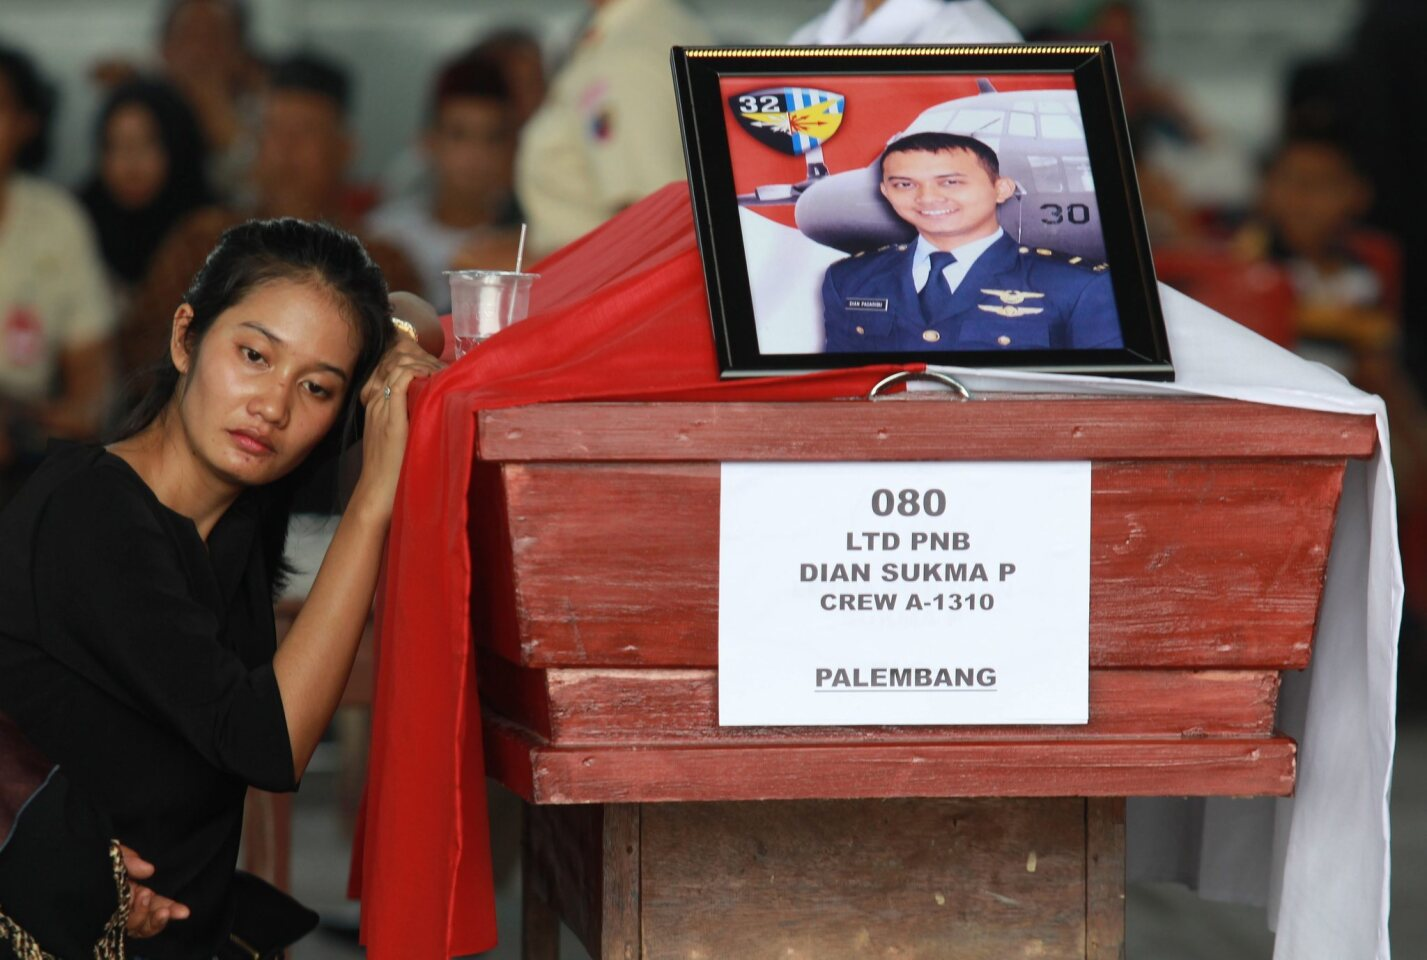 An Indonesian woman mourns beside the coffin of her relative, one of the victims of the crashed C-130 military airplane at a military airbase in Medan, North Sumatra, Indonesia on July 1, 2015.